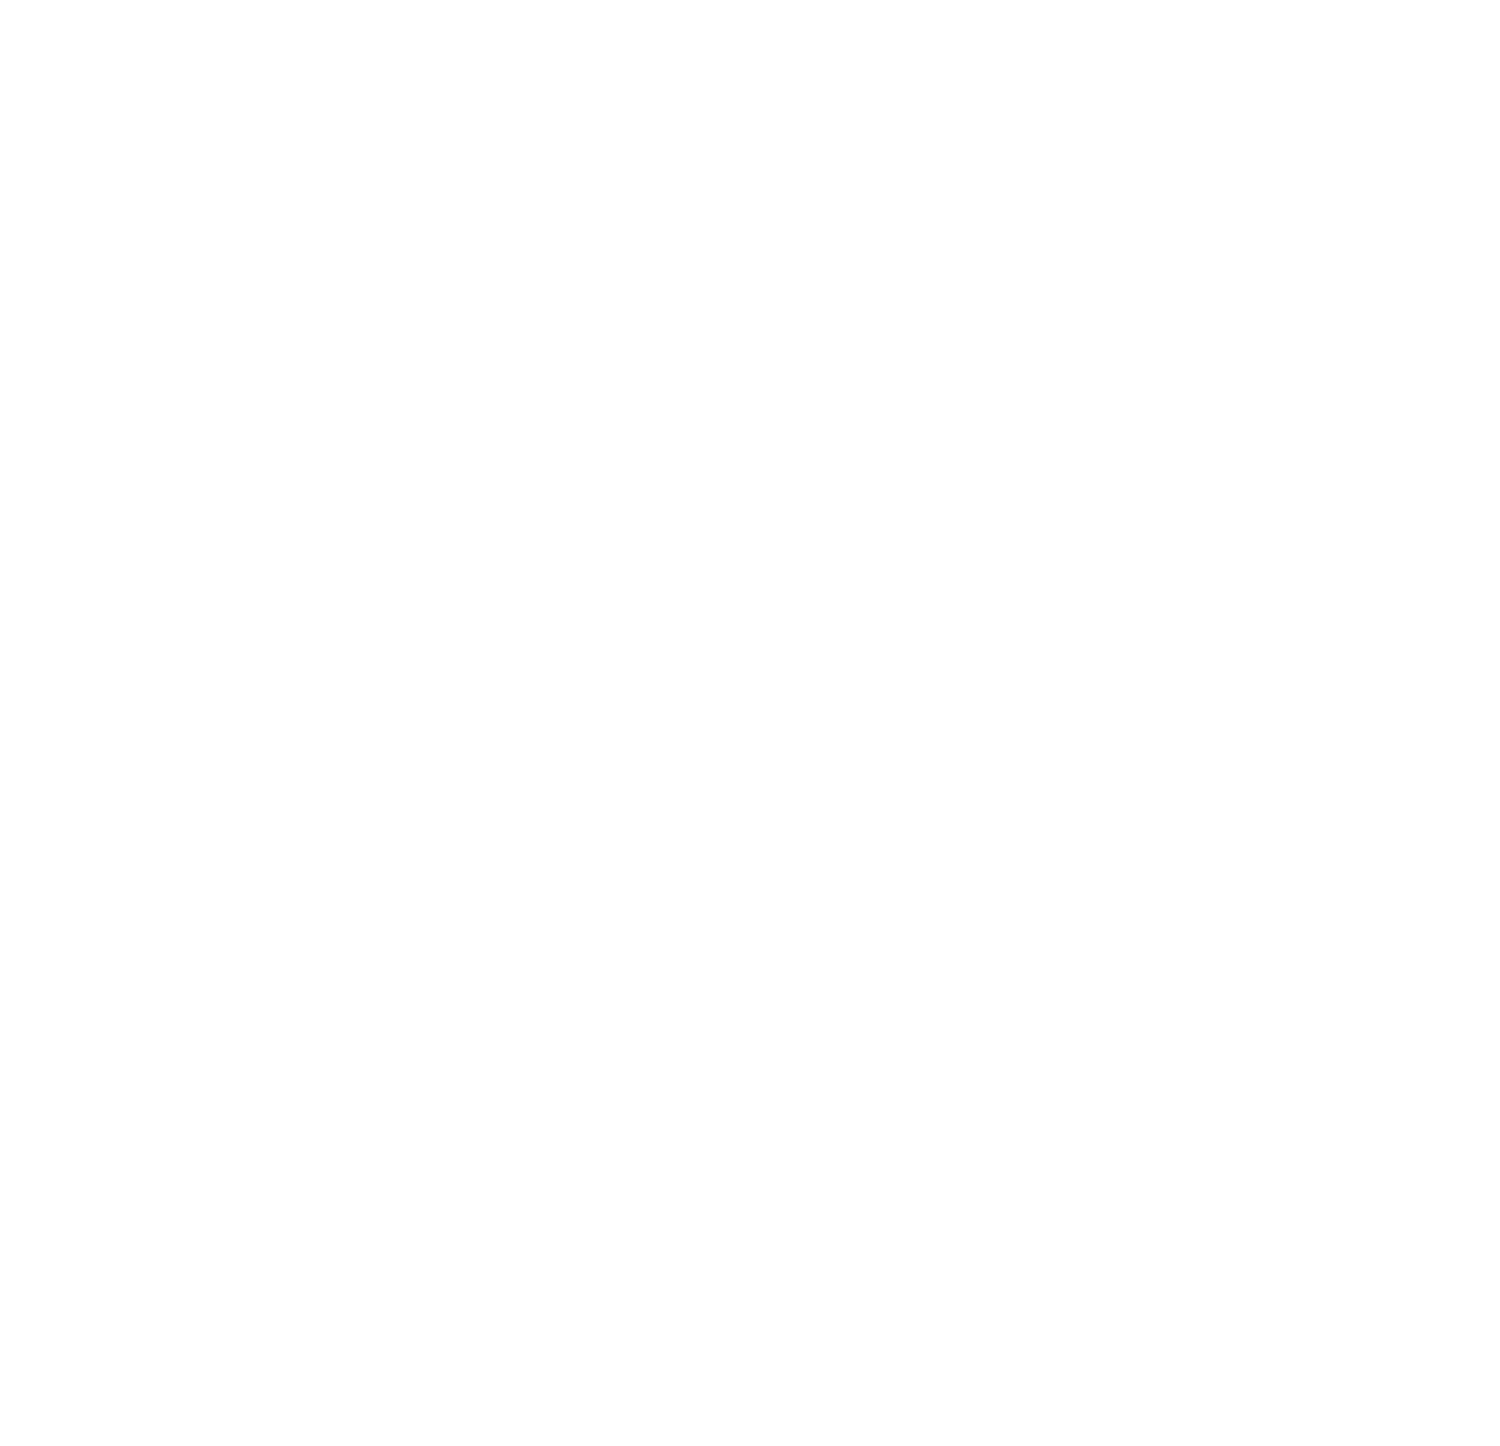 Day-Wilson & Kay - Attorneys at Law - Eureka, Ca